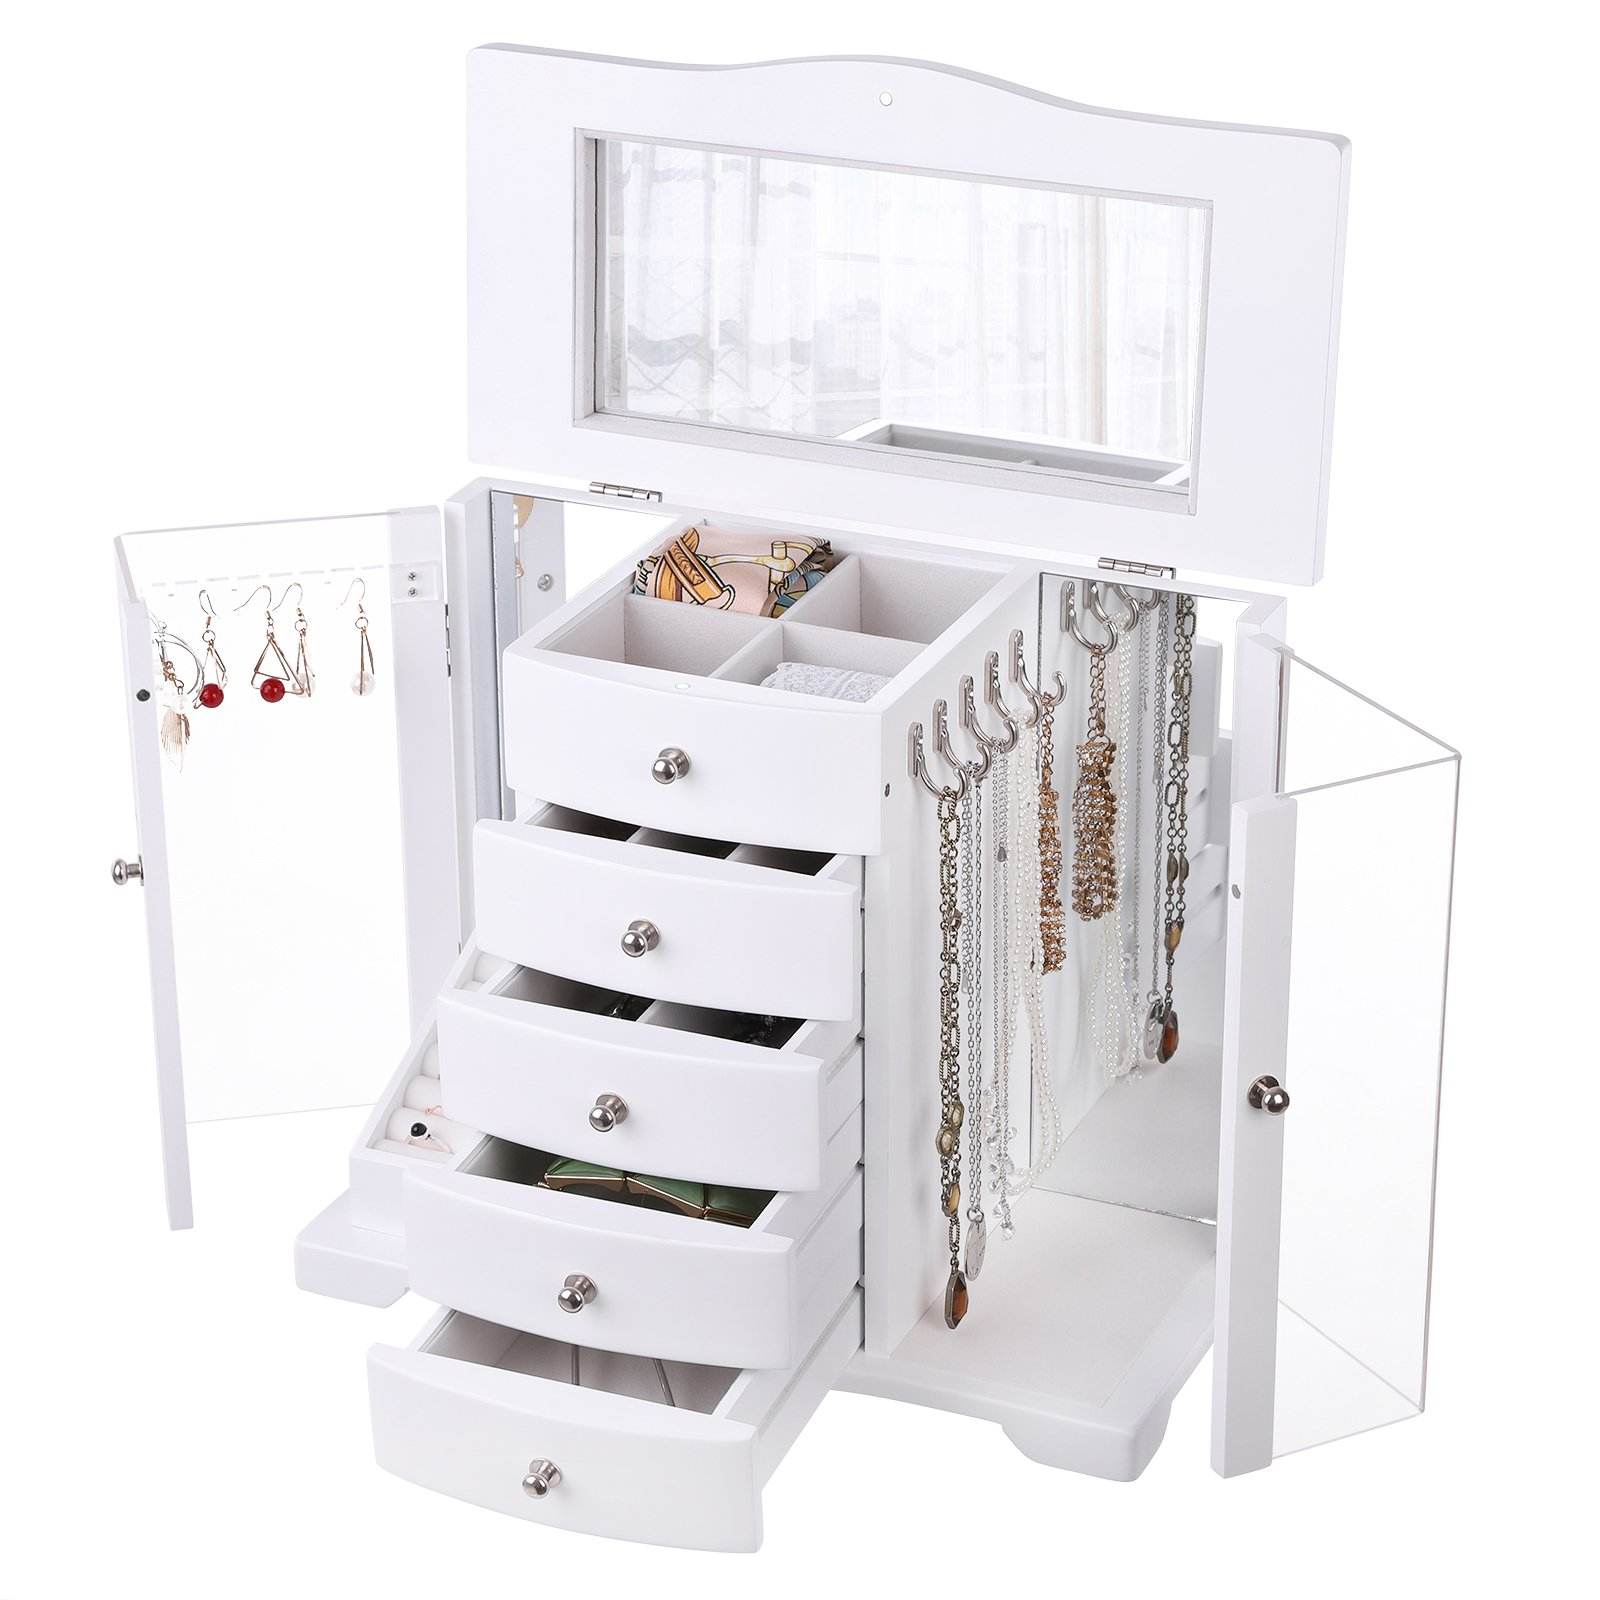 SONGMICS Wooden Jewelry Box Large Organizer with Clear Acrylic Doors and 4 Drawers,Gift for Mom, White UJOW57W